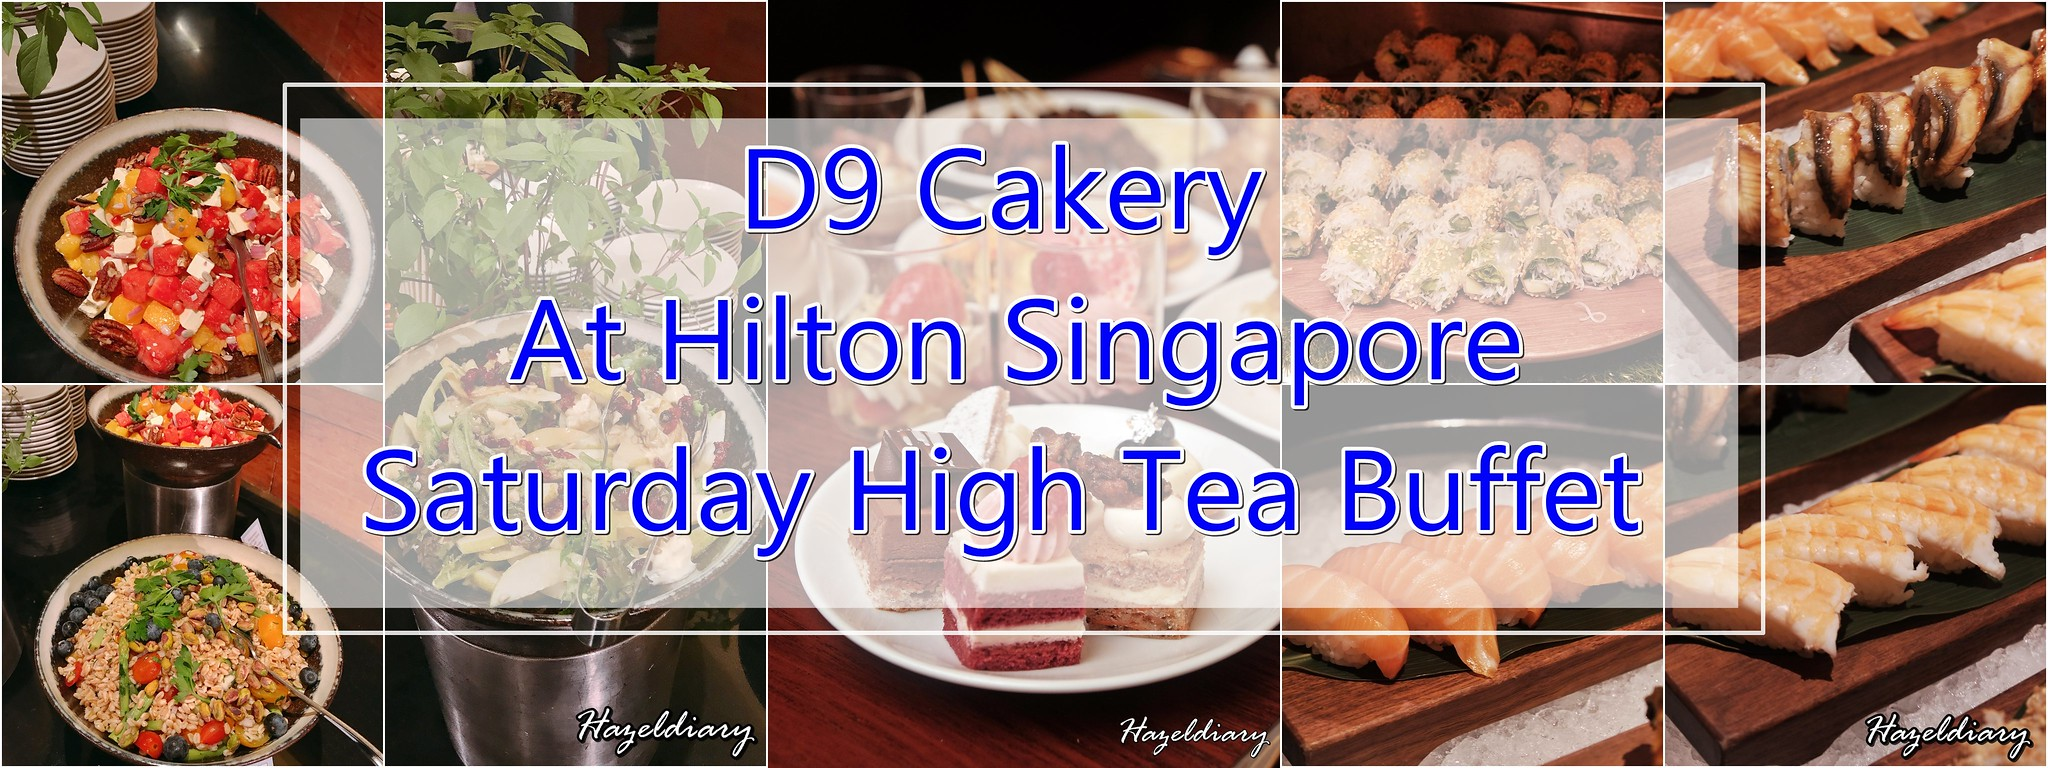 [SG EATS] D9 Cakery At Hilton- Saturday High Tea Buffet – D9 Desserts + Local & International Flavours